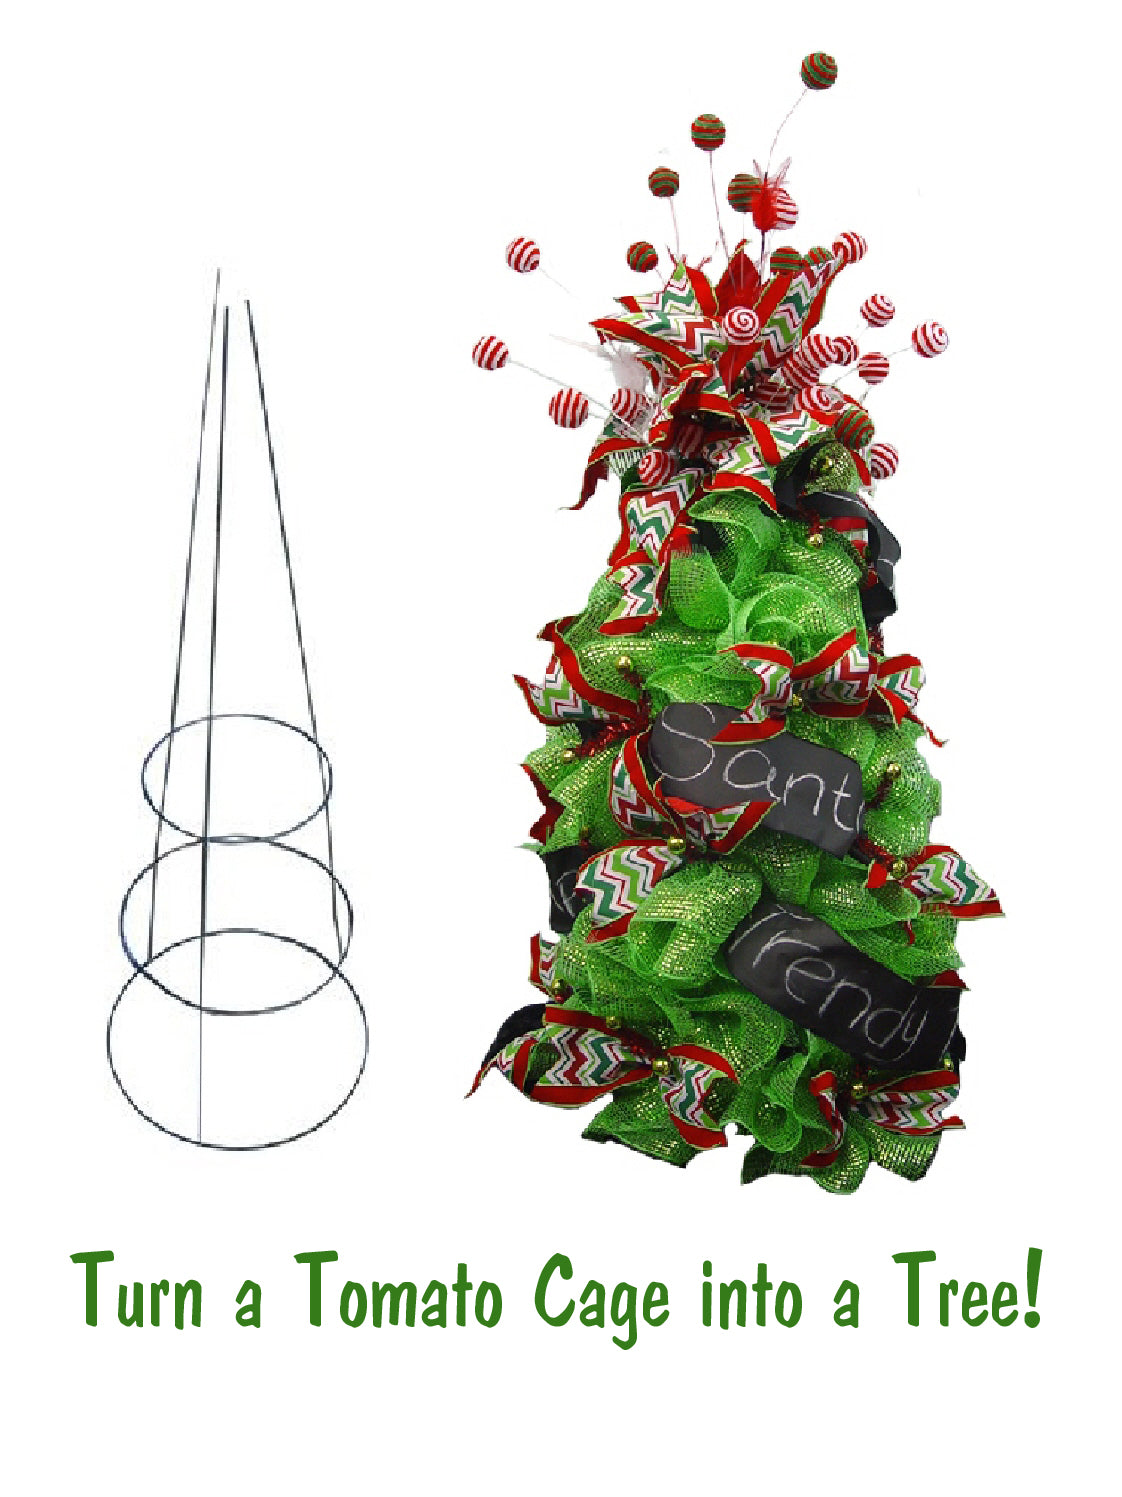 Turn a Tomato Cage into a Christmas Tree!